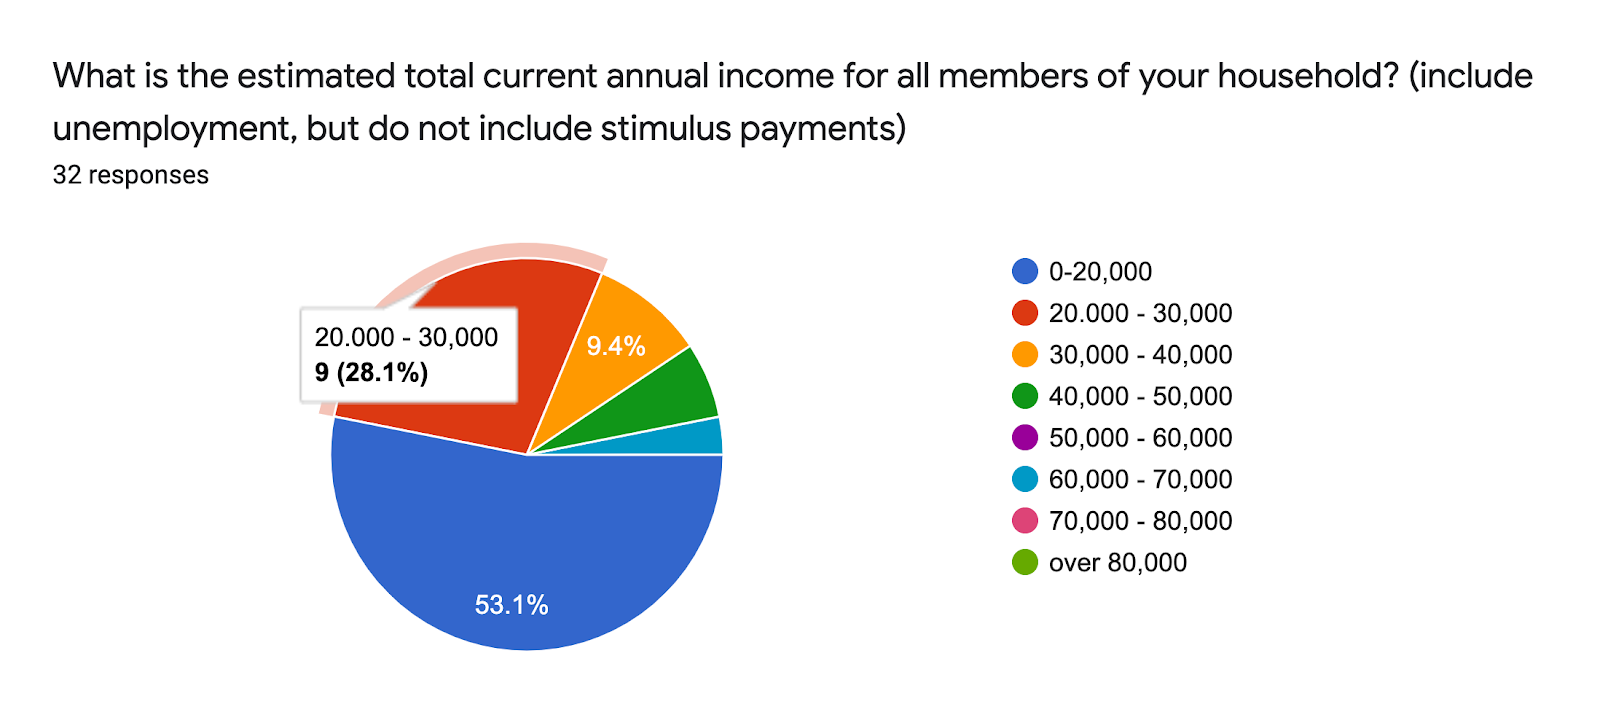 Forms response chart. Question title: What is the estimated total current annual income for all members of your household? (include unemployment, but do not include stimulus payments). Number of responses: 32 responses.